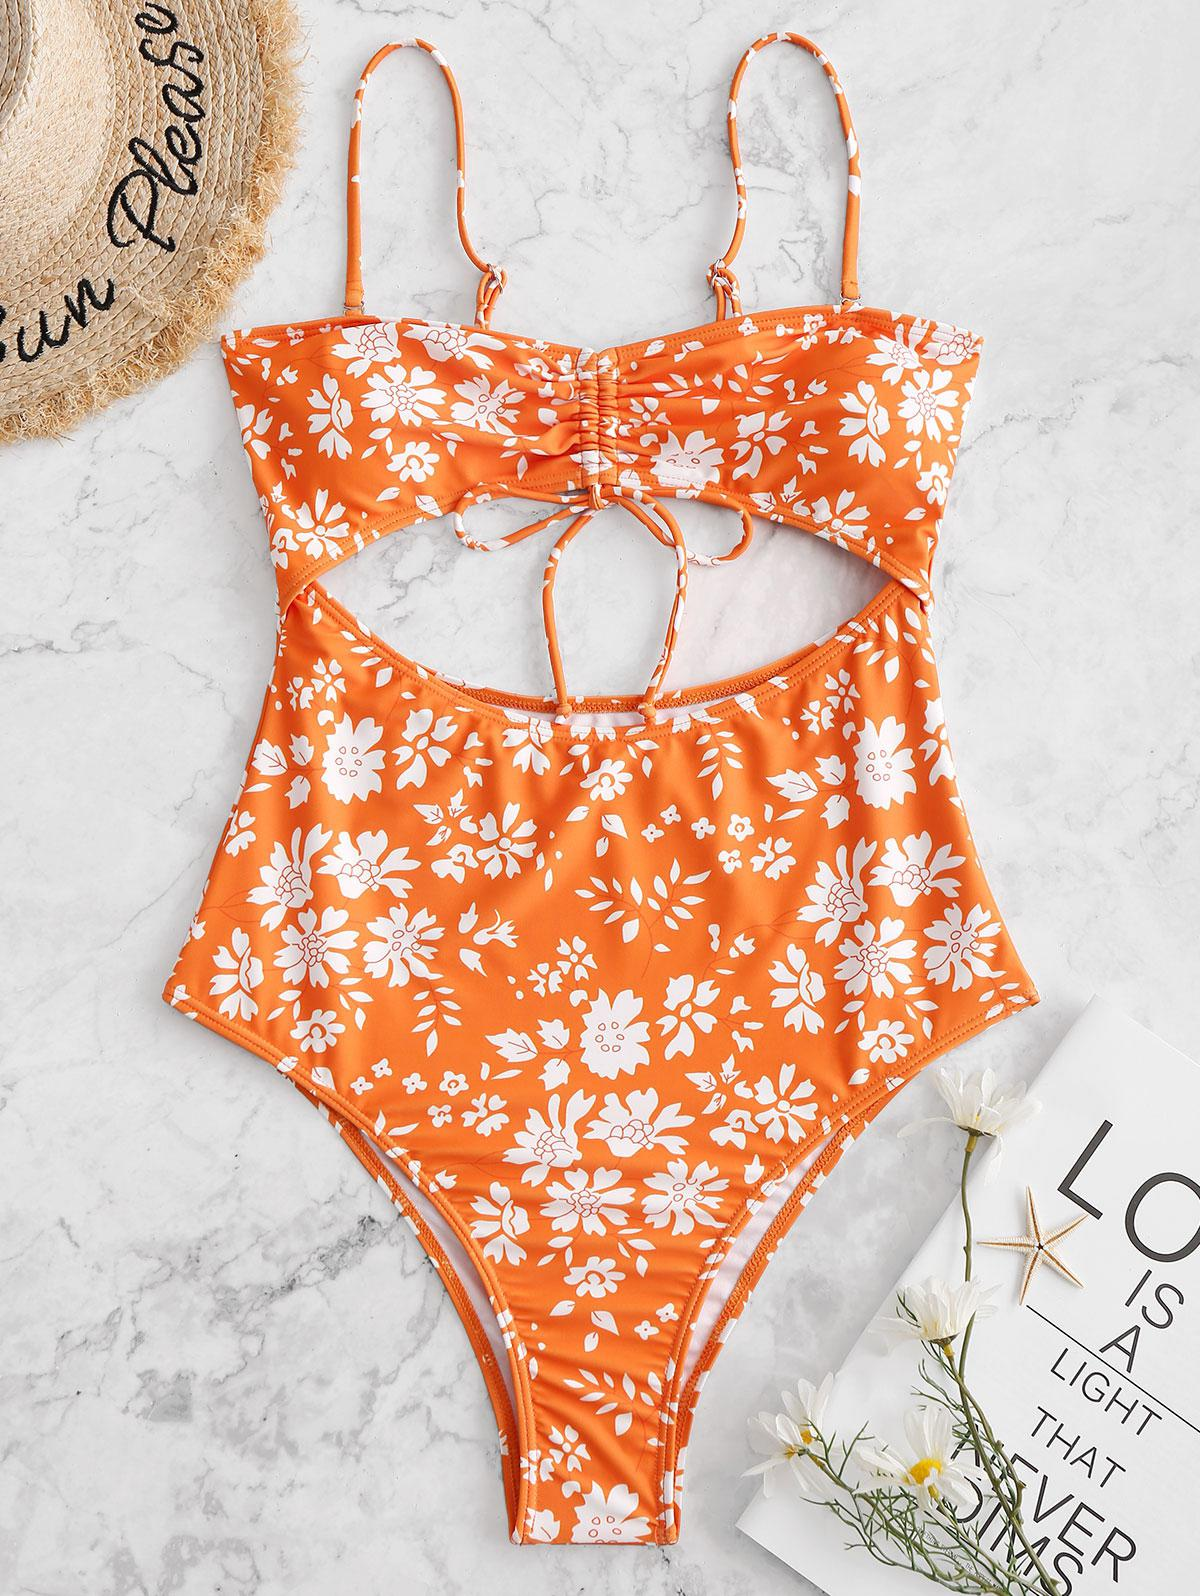 ZAFUL Cut Out Floral High Cut One-piece Swimsuit thumbnail